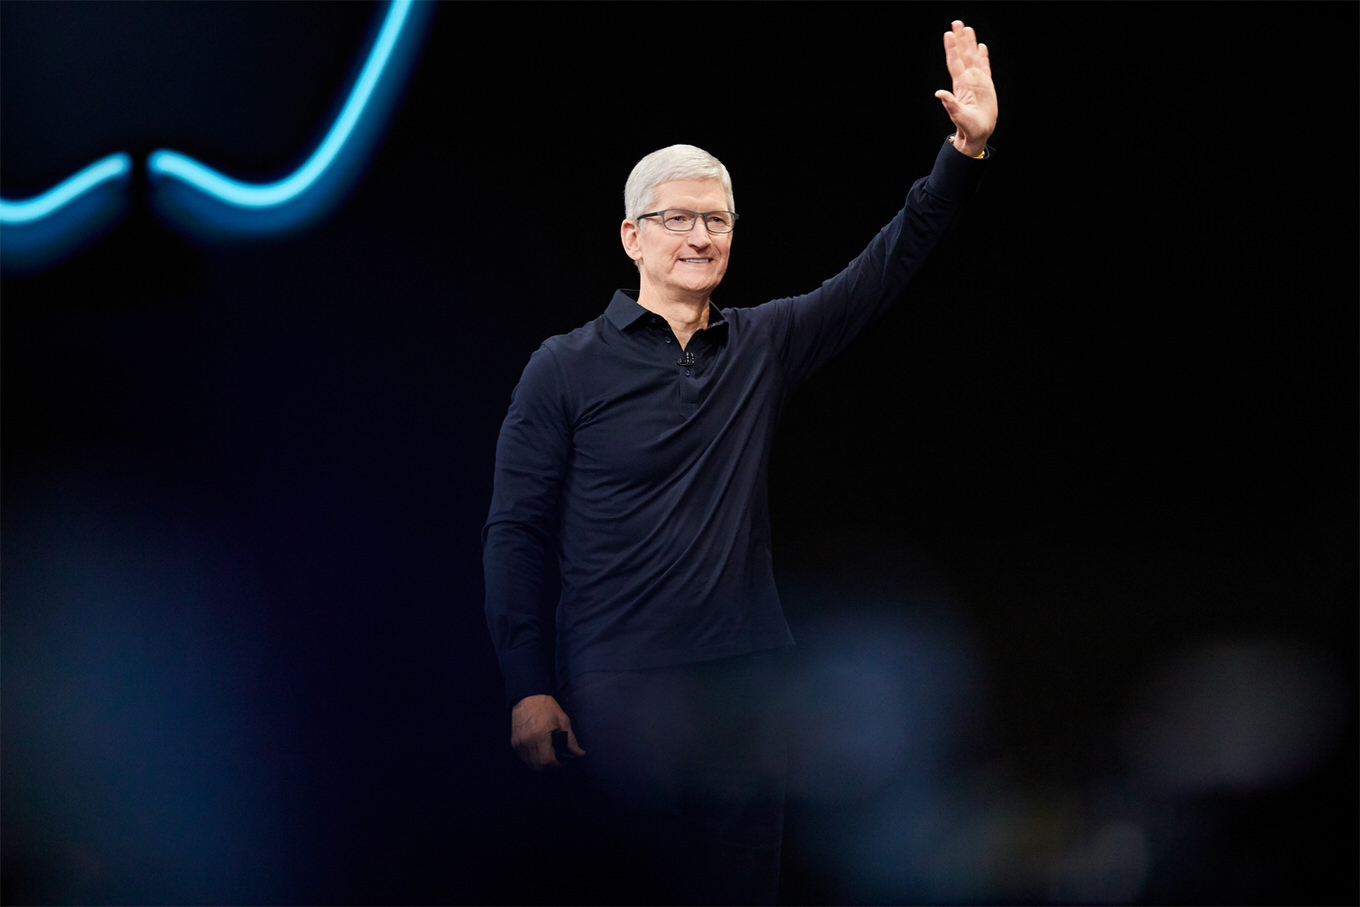 apple-highlights-from-wwdc2019-tim-cook-welcomes-developers-060319